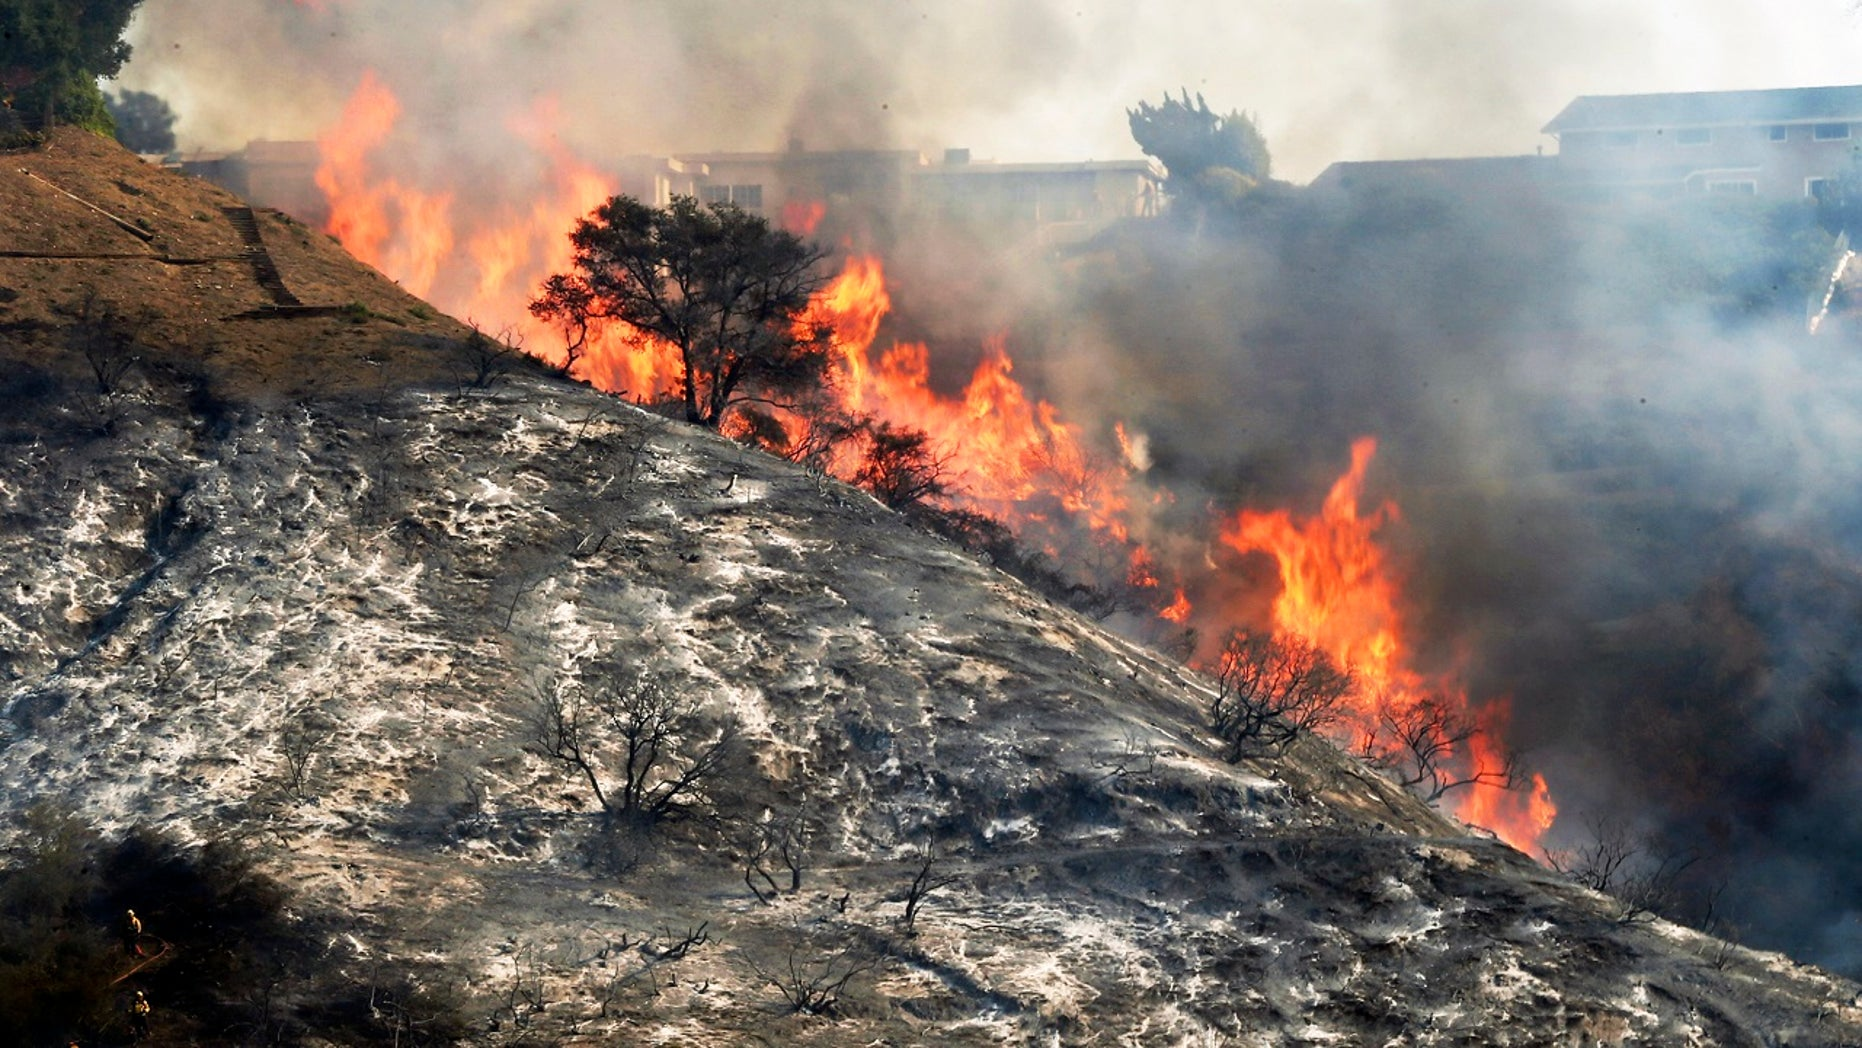 The Skirball fire affecting Bel-Air is one of six fires that erupted in Southern California last week.